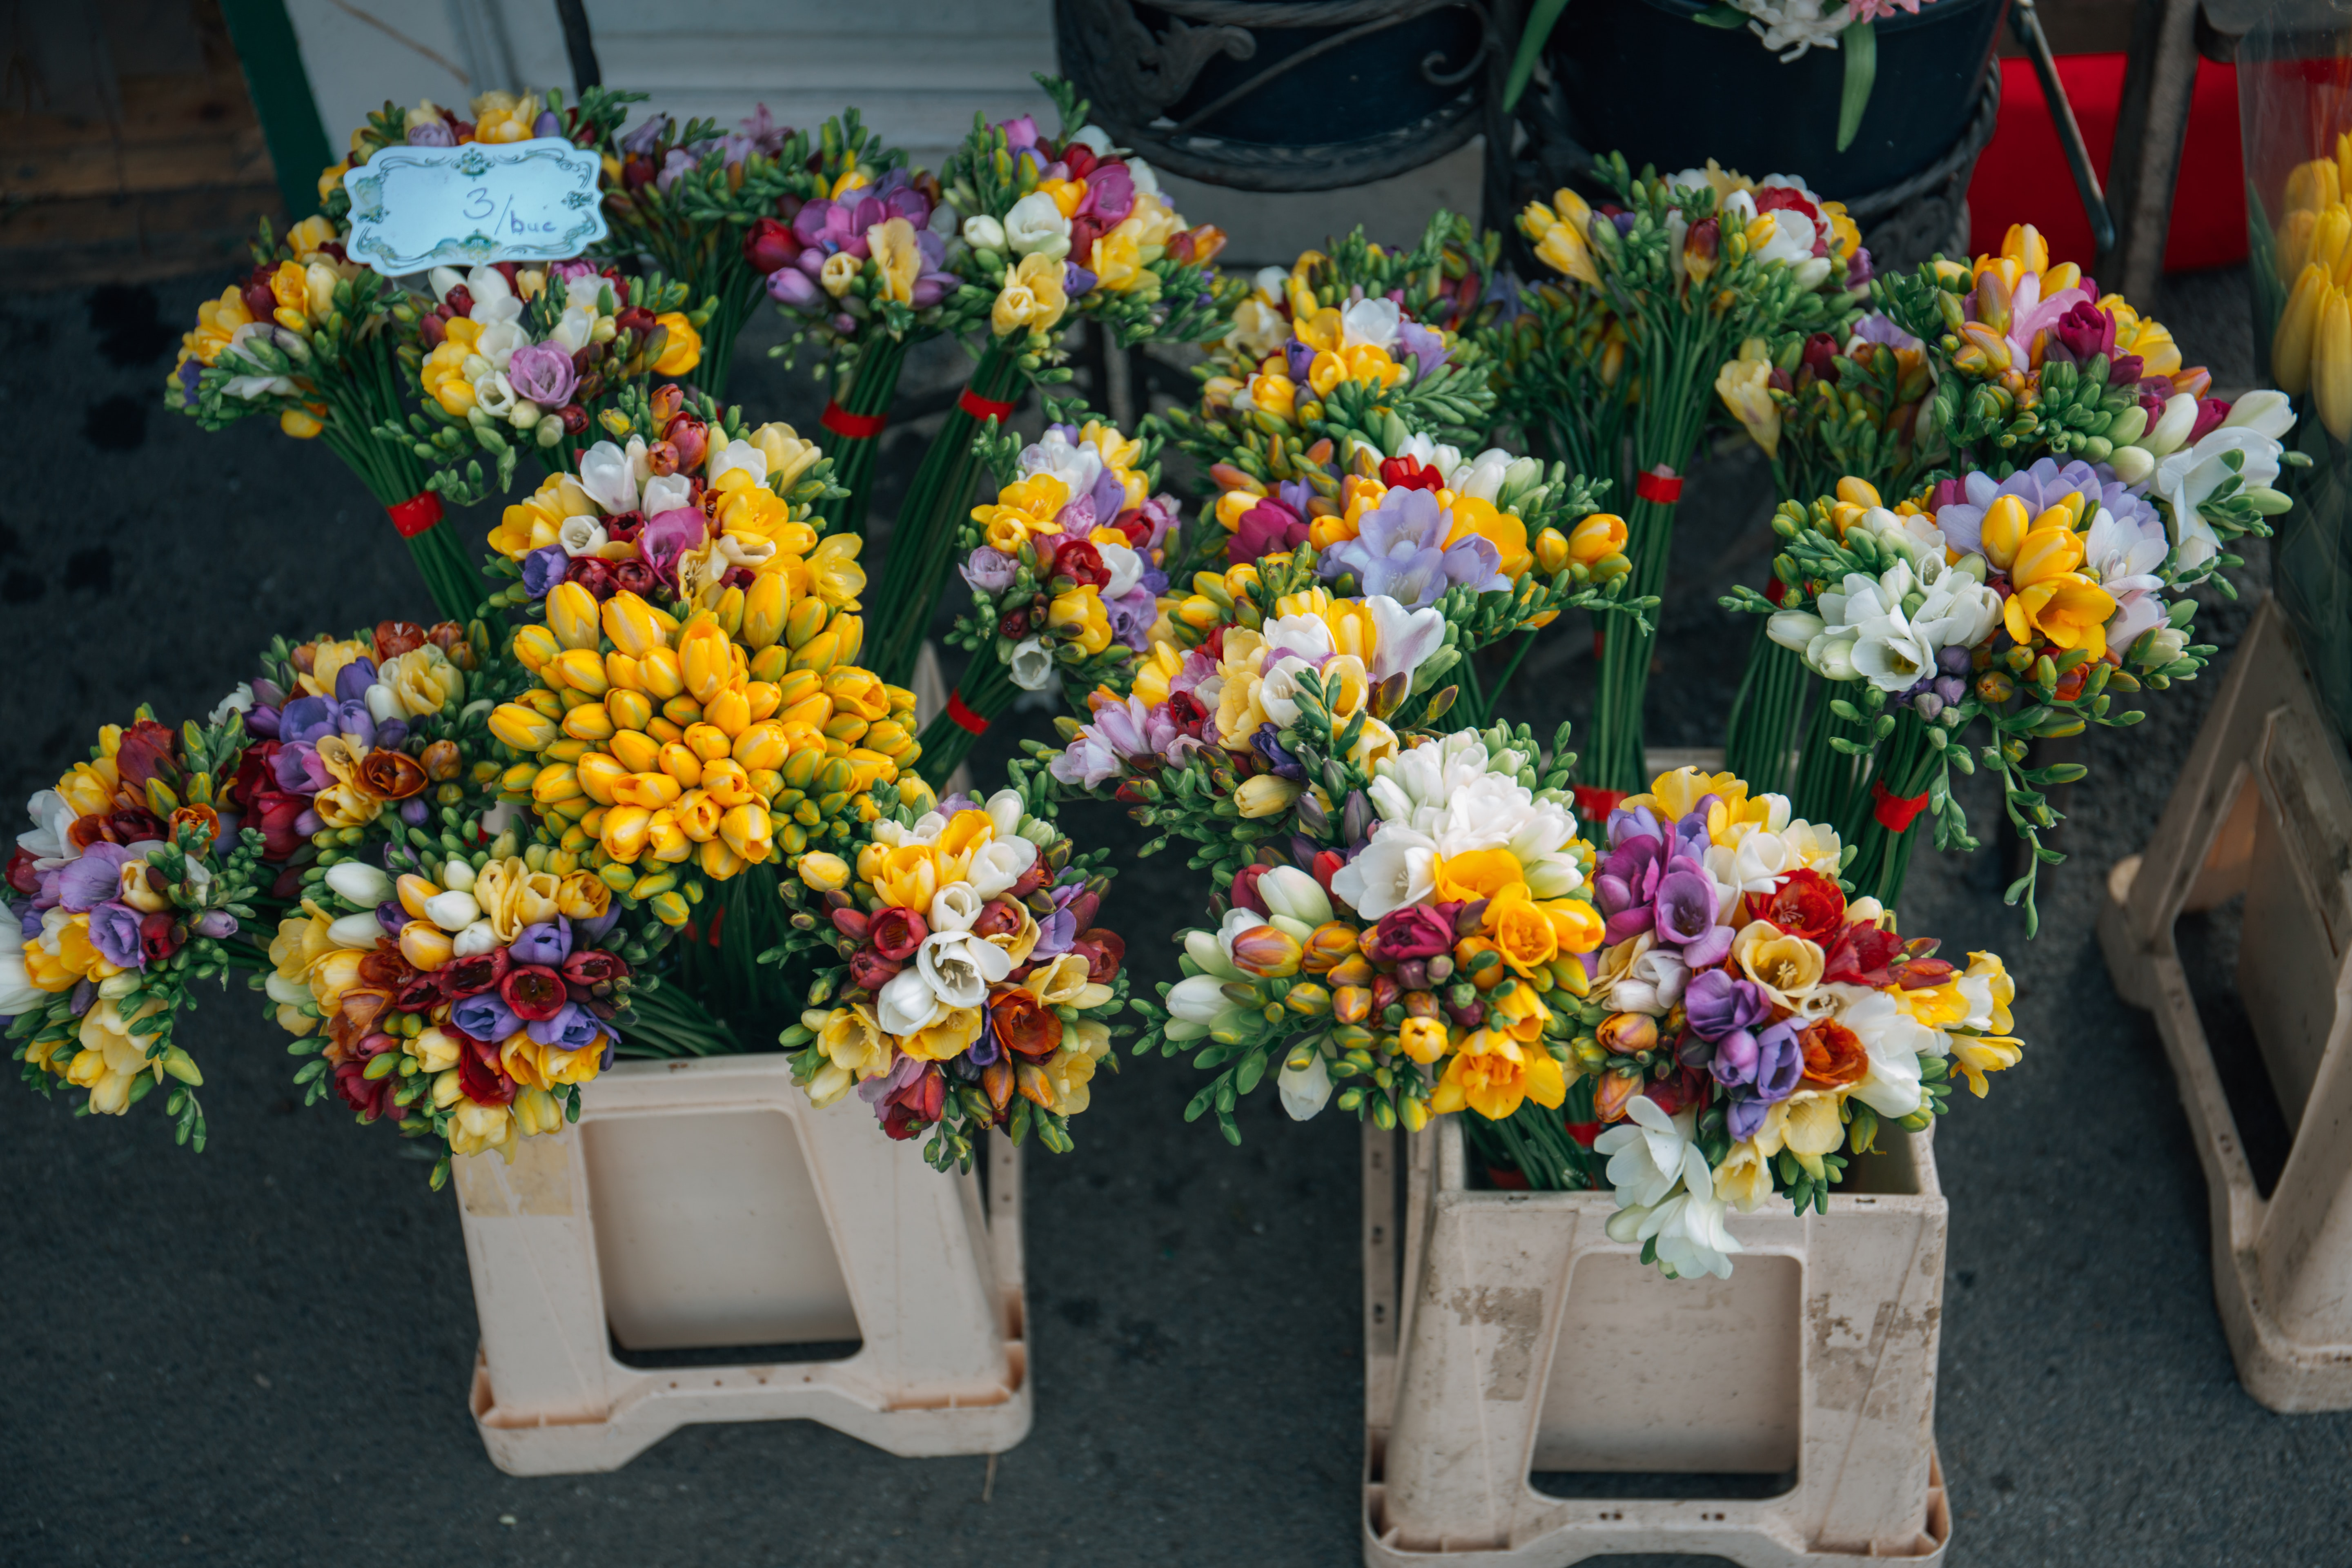 A number of colorful flower bouquets at a florist's